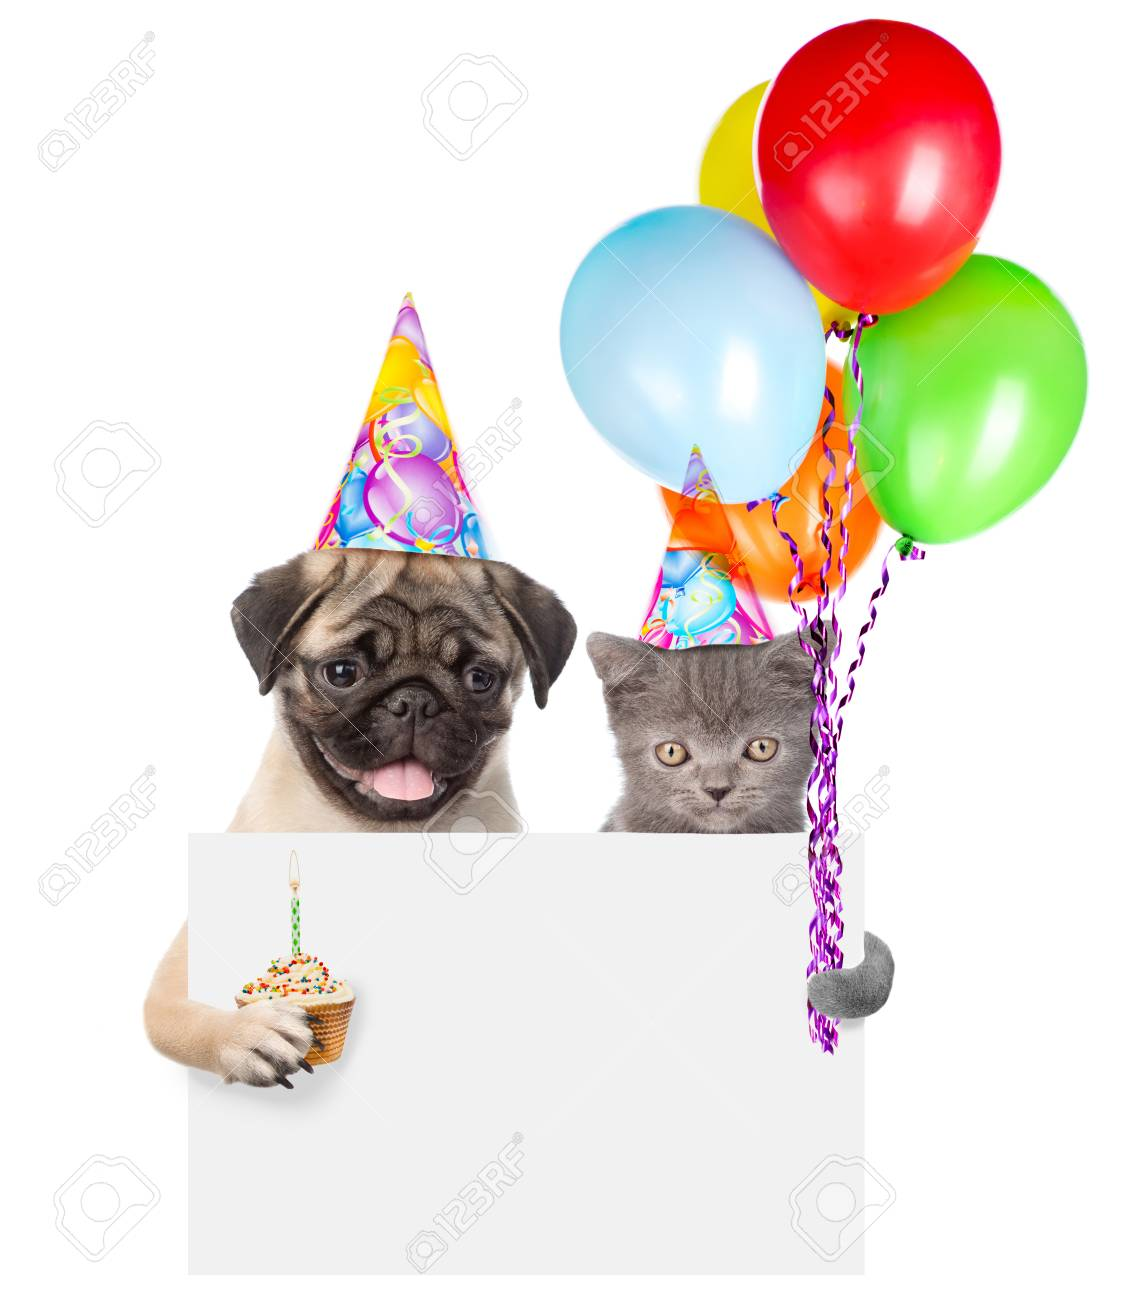 Cat And Dog In Birthday Hats Holding Cake Balloons Peeking From Behind Empty Board